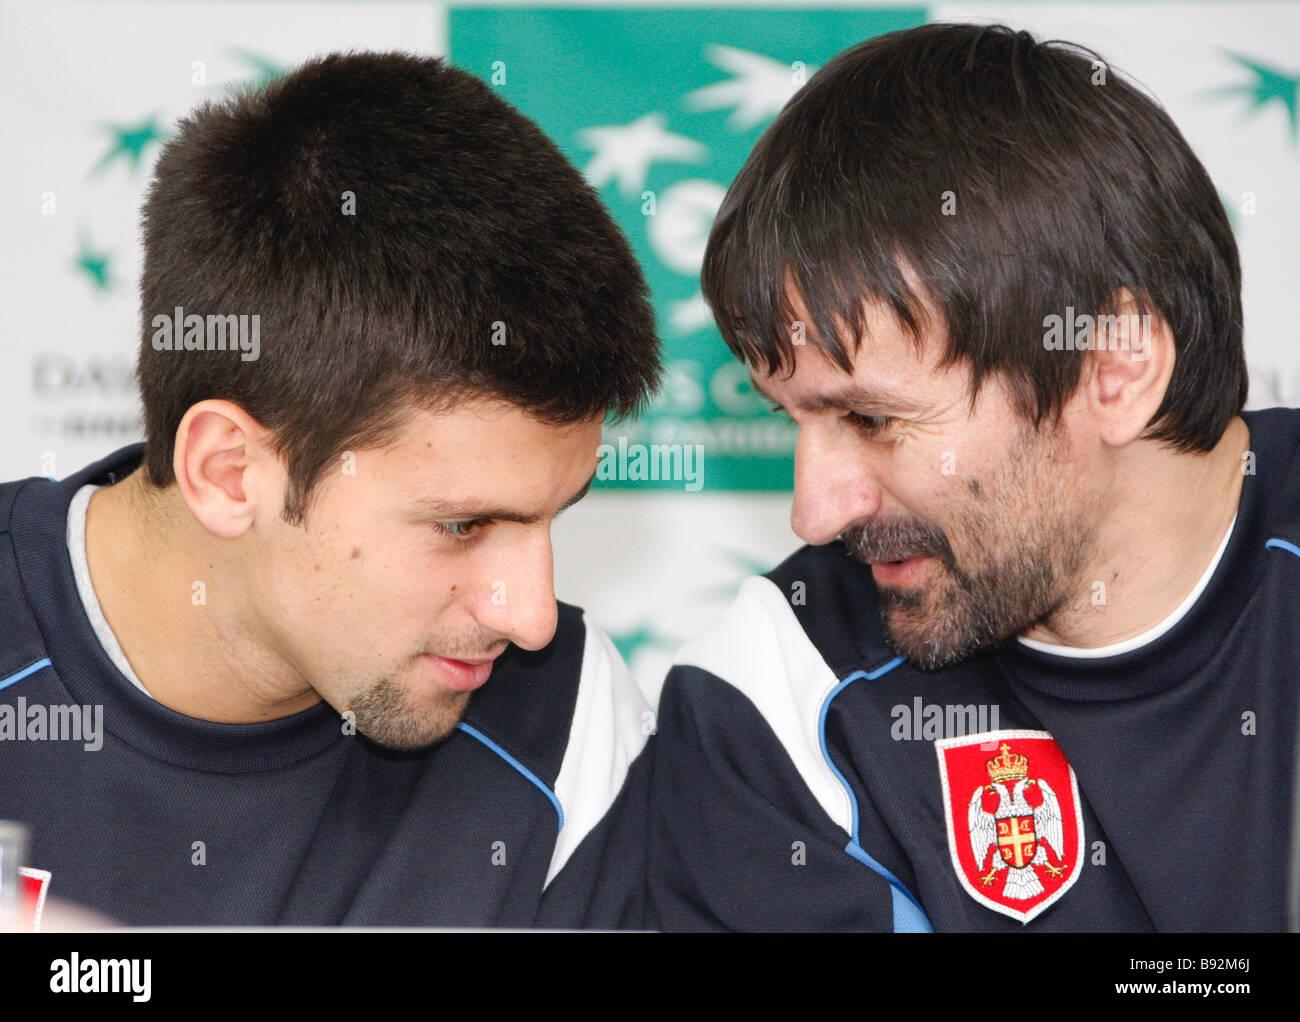 Serbian tennis player Novak Djokovic and captain of the Serbian team Bogdan Obradovic left to right at a press conference - Stock Image